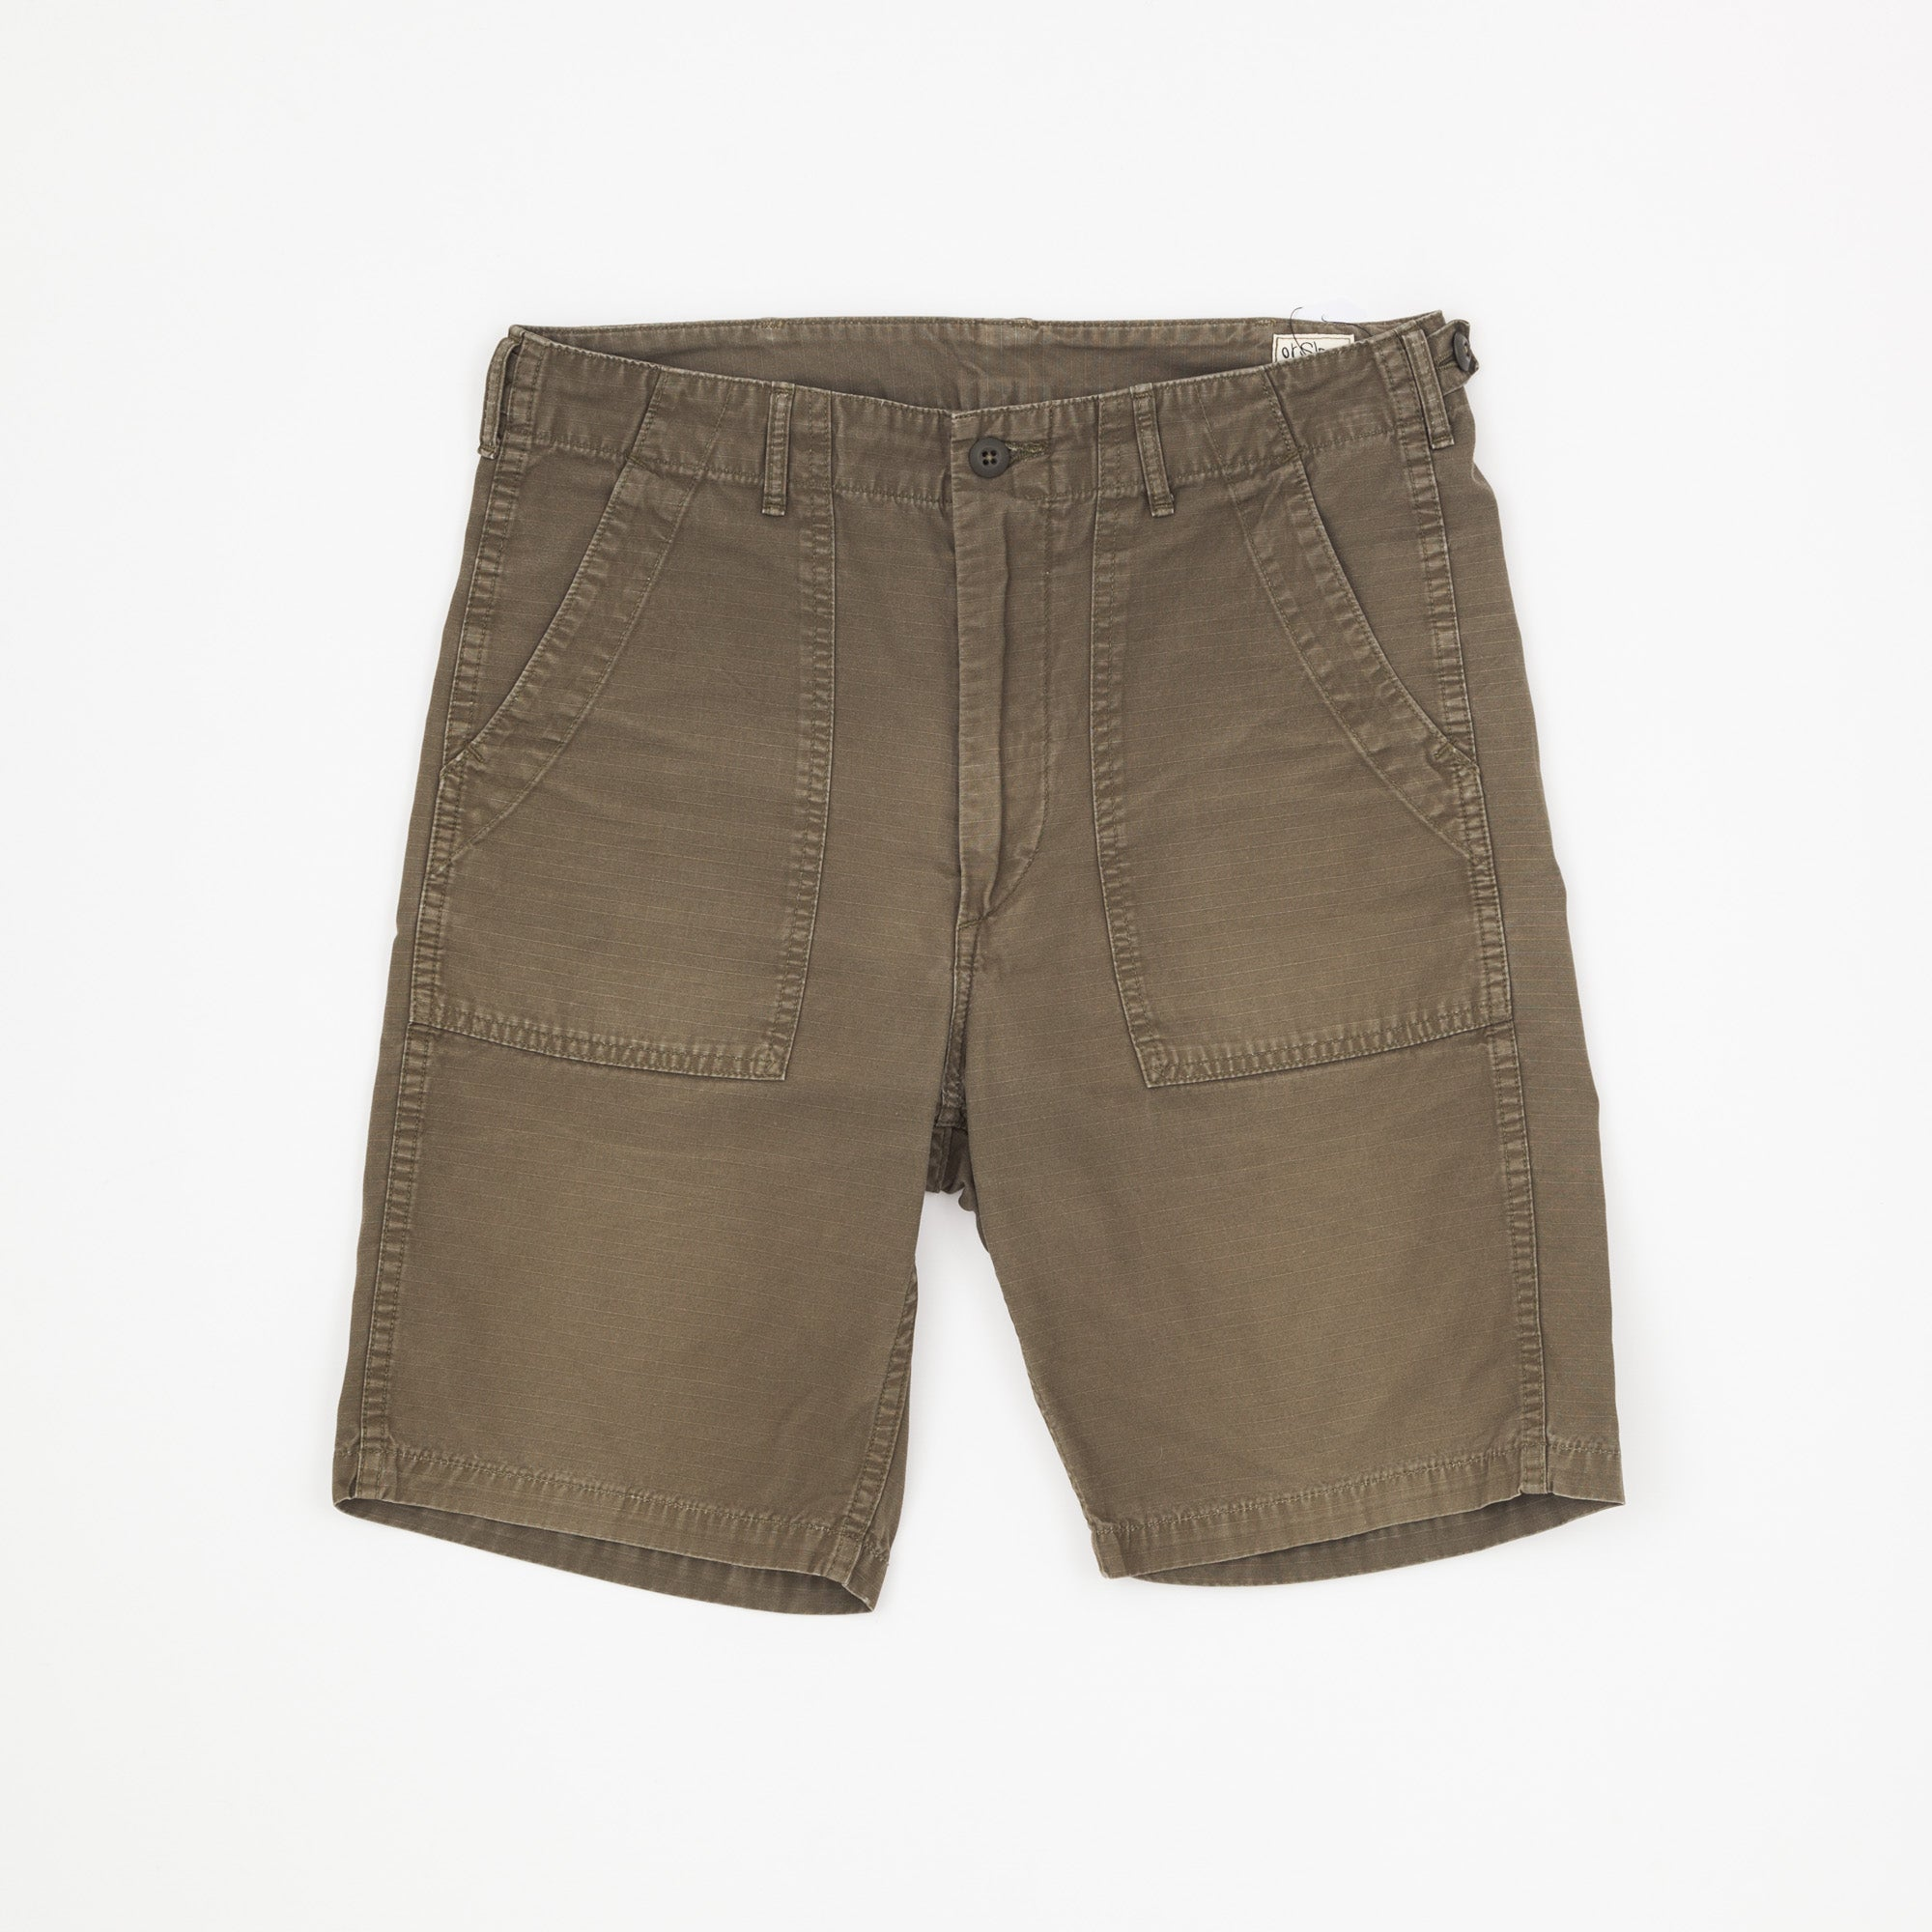 Orslow Ripstop Fatigue Shorts